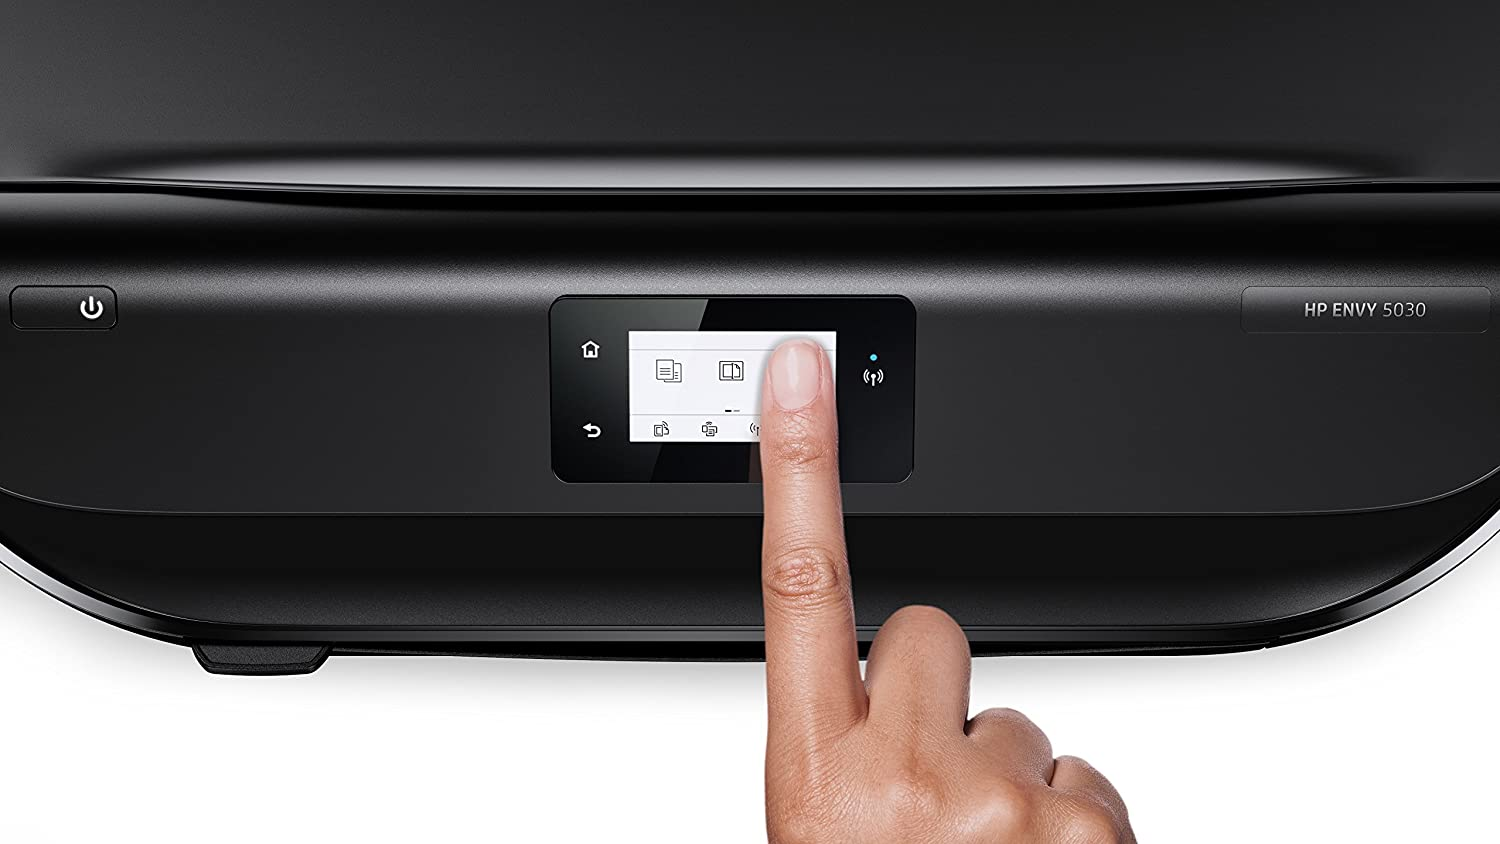 HP ENVY 5030 Monochromes Touch-Display